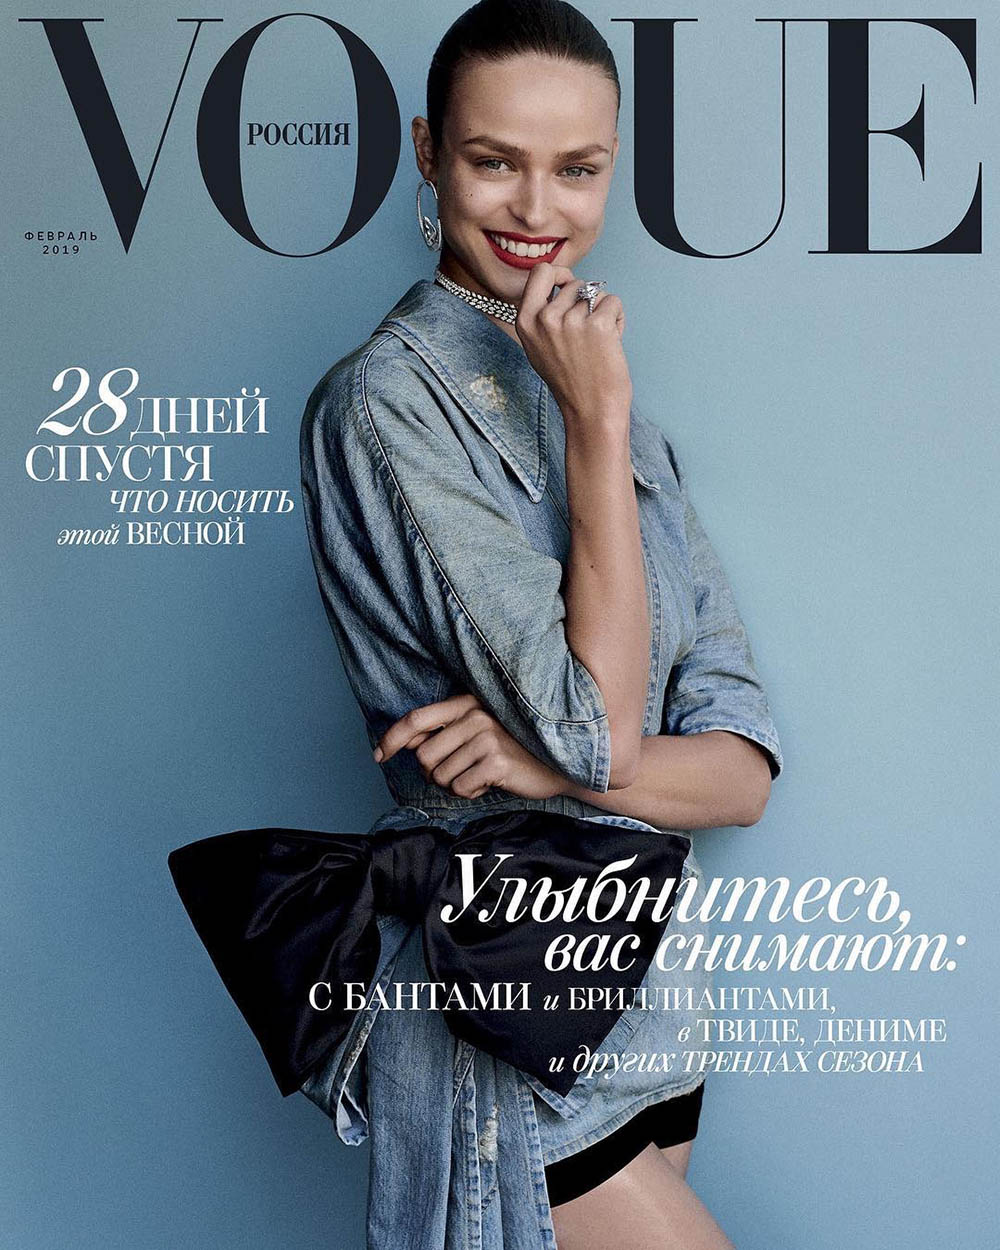 Birgit Kos covers Vogue Russia February 2019 by Giampaolo Sgura